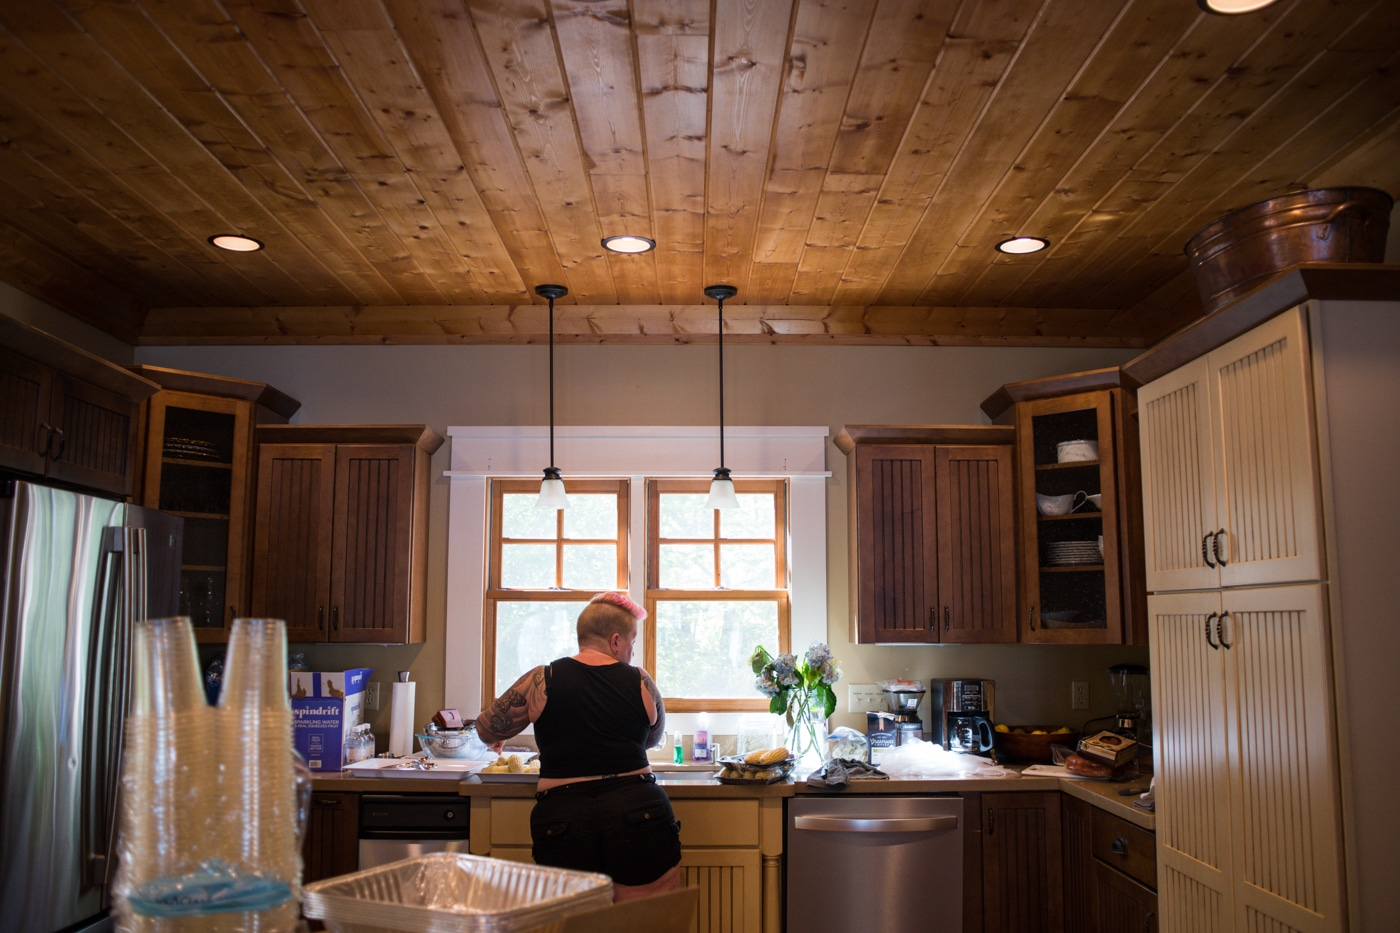 woman prepares food in kitchen for wedding day